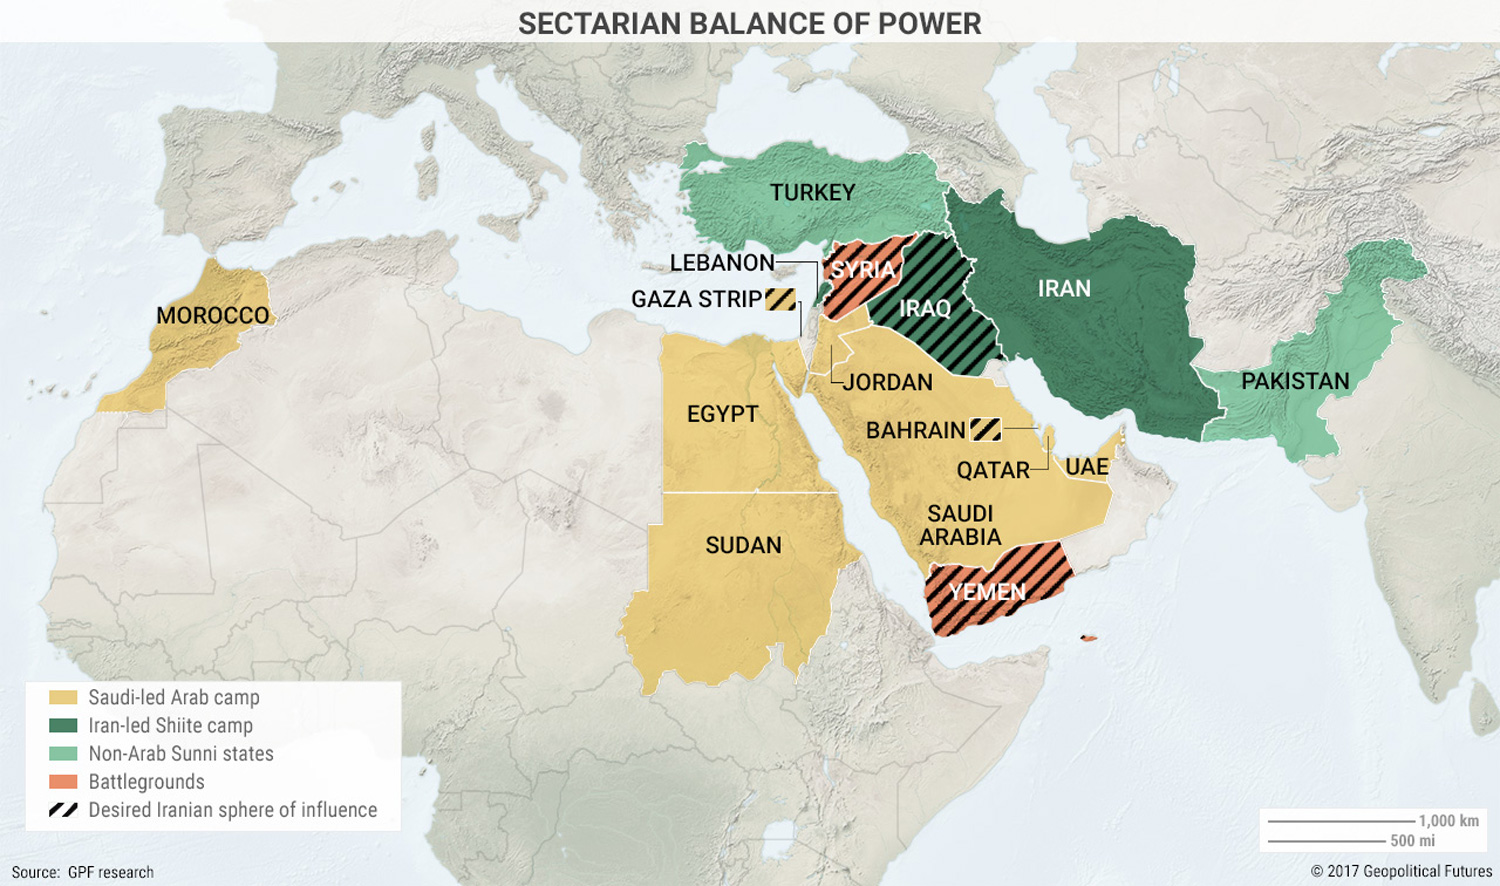 Thereu0027s Historical Precedent For Whatu0027s Happening In The Middle East. In  The 10th Century, The Shiite Buyid And Fatimid Dynasties Came To Power  Because The ...